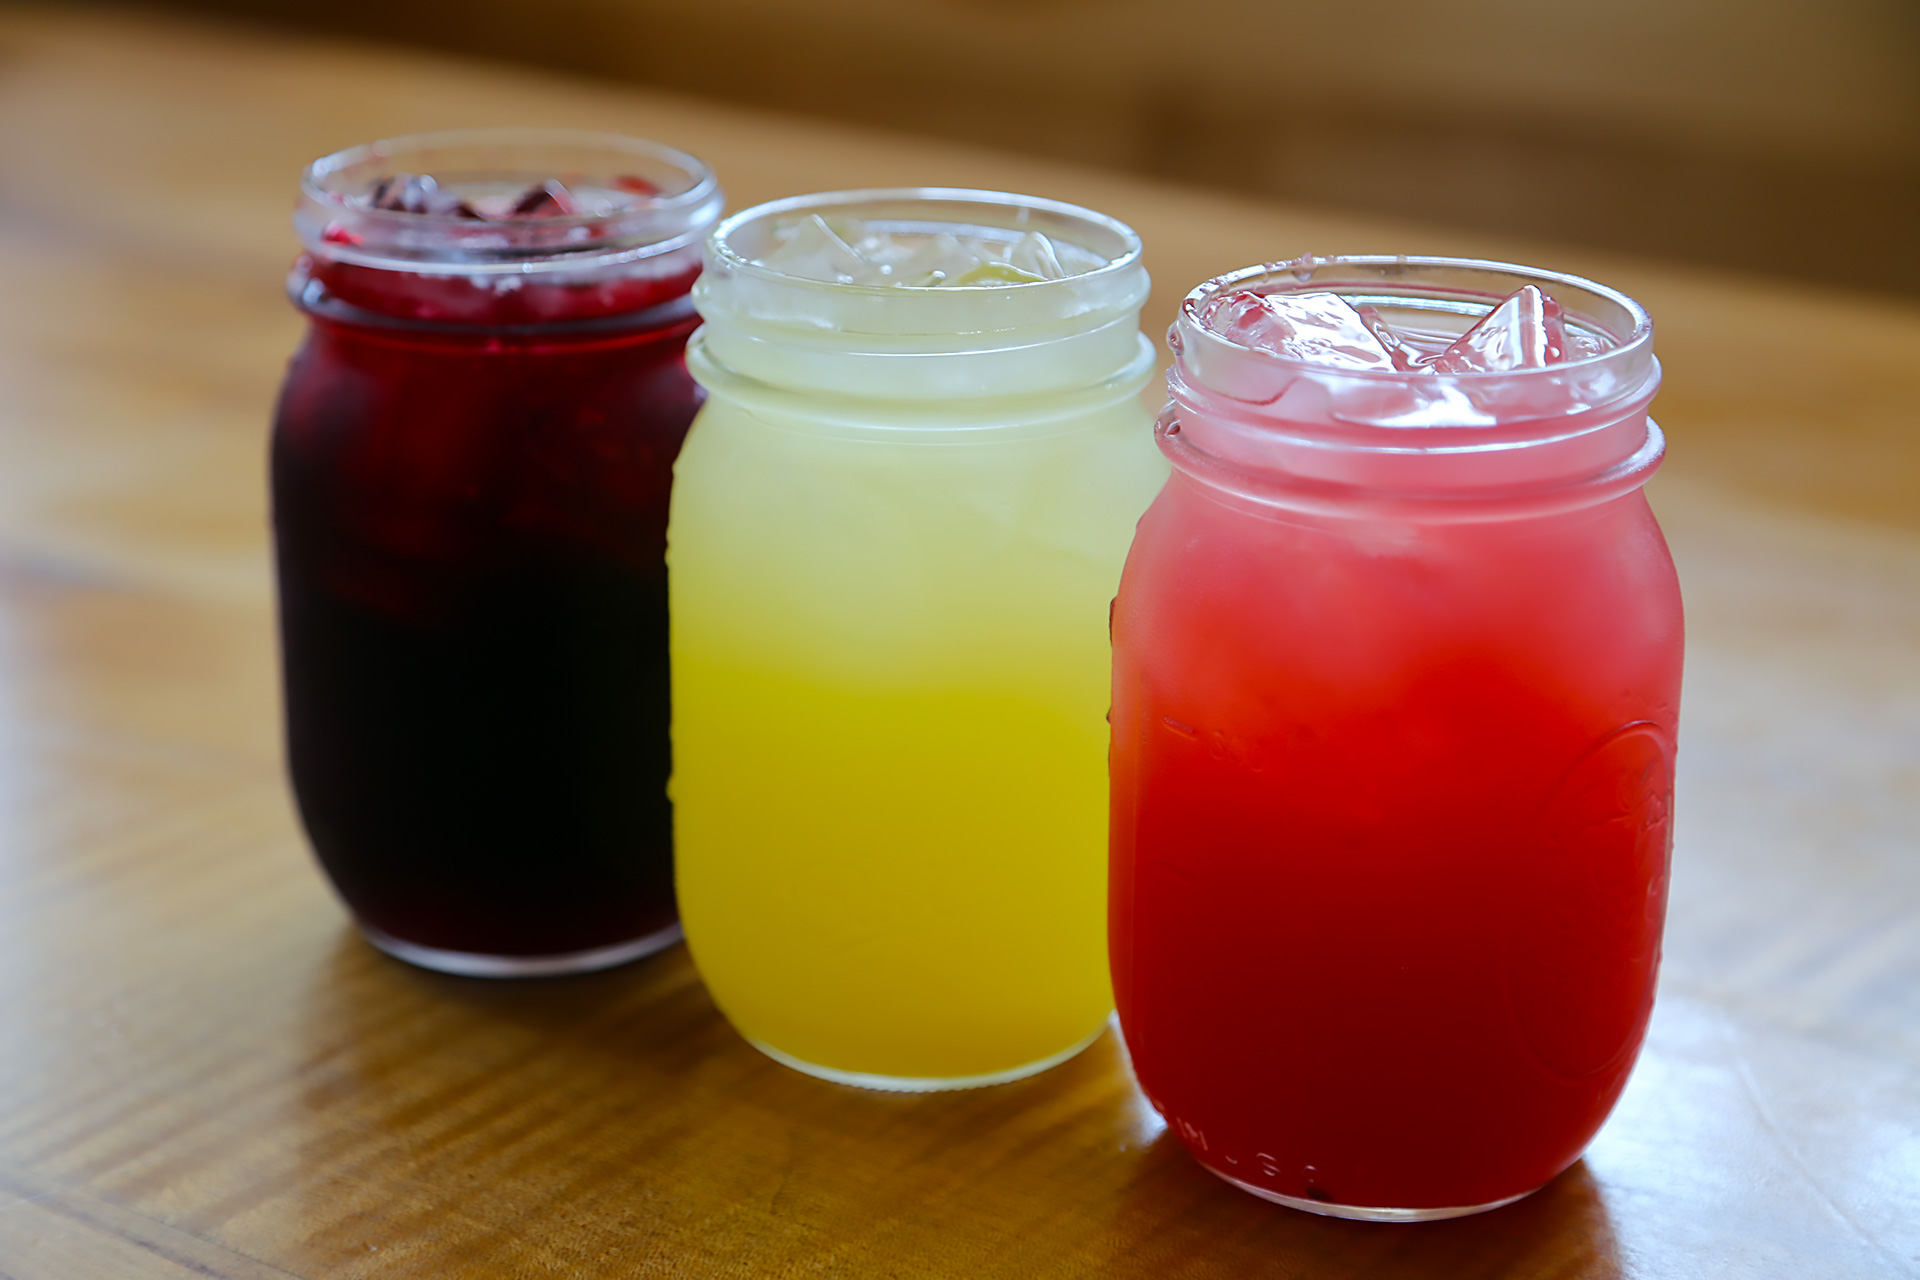 Agua frescas are housemade: jimica (hibiscus), pineapple and watermelon.